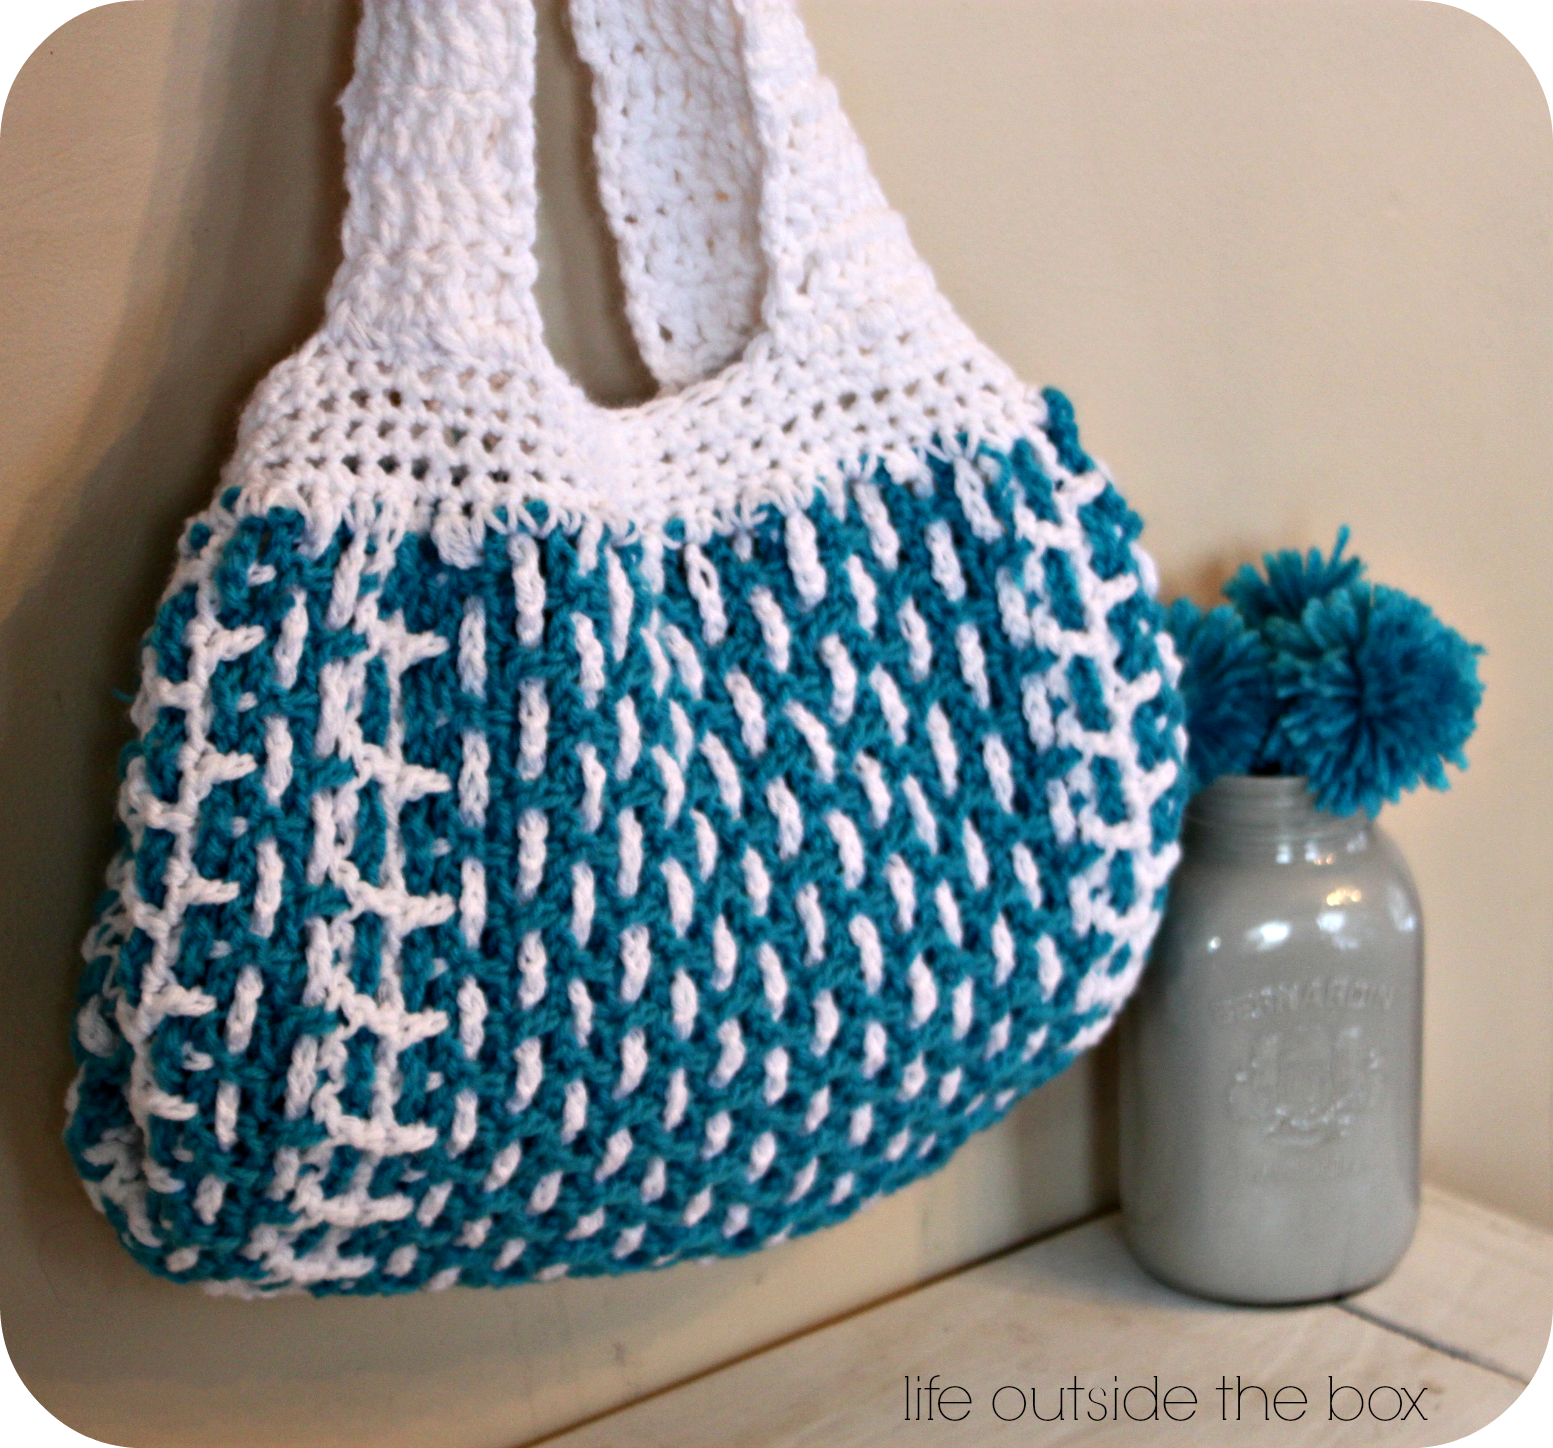 Easy+Crochet+Tote+Bag+Pattern | Free Crochet Tote Bag Patterns ...